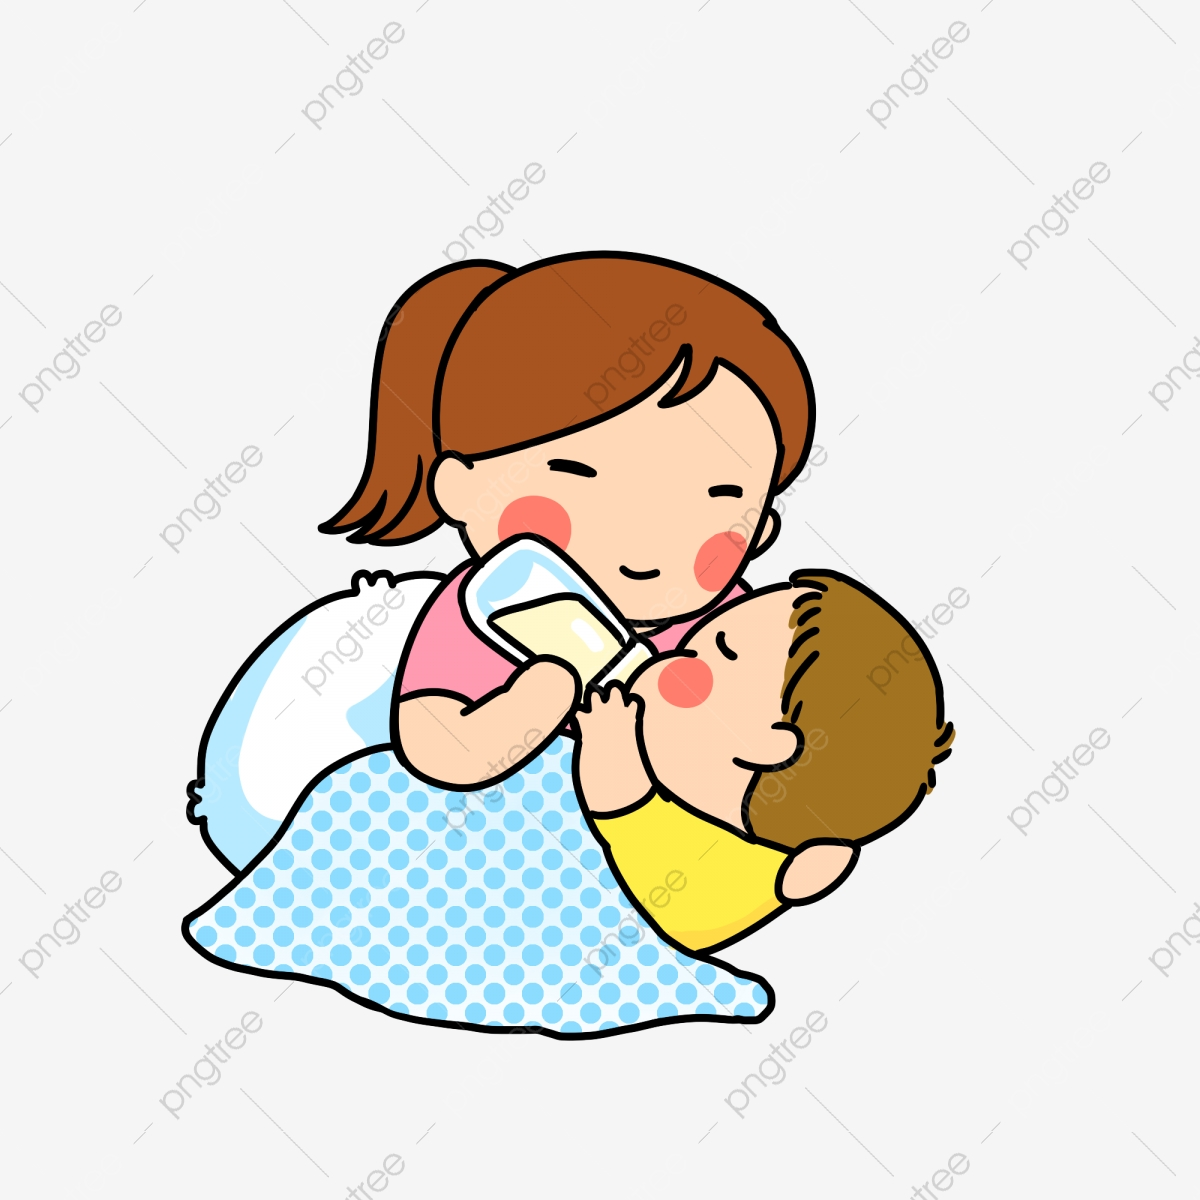 Hungry clipart hungry child. Baby in the shackles